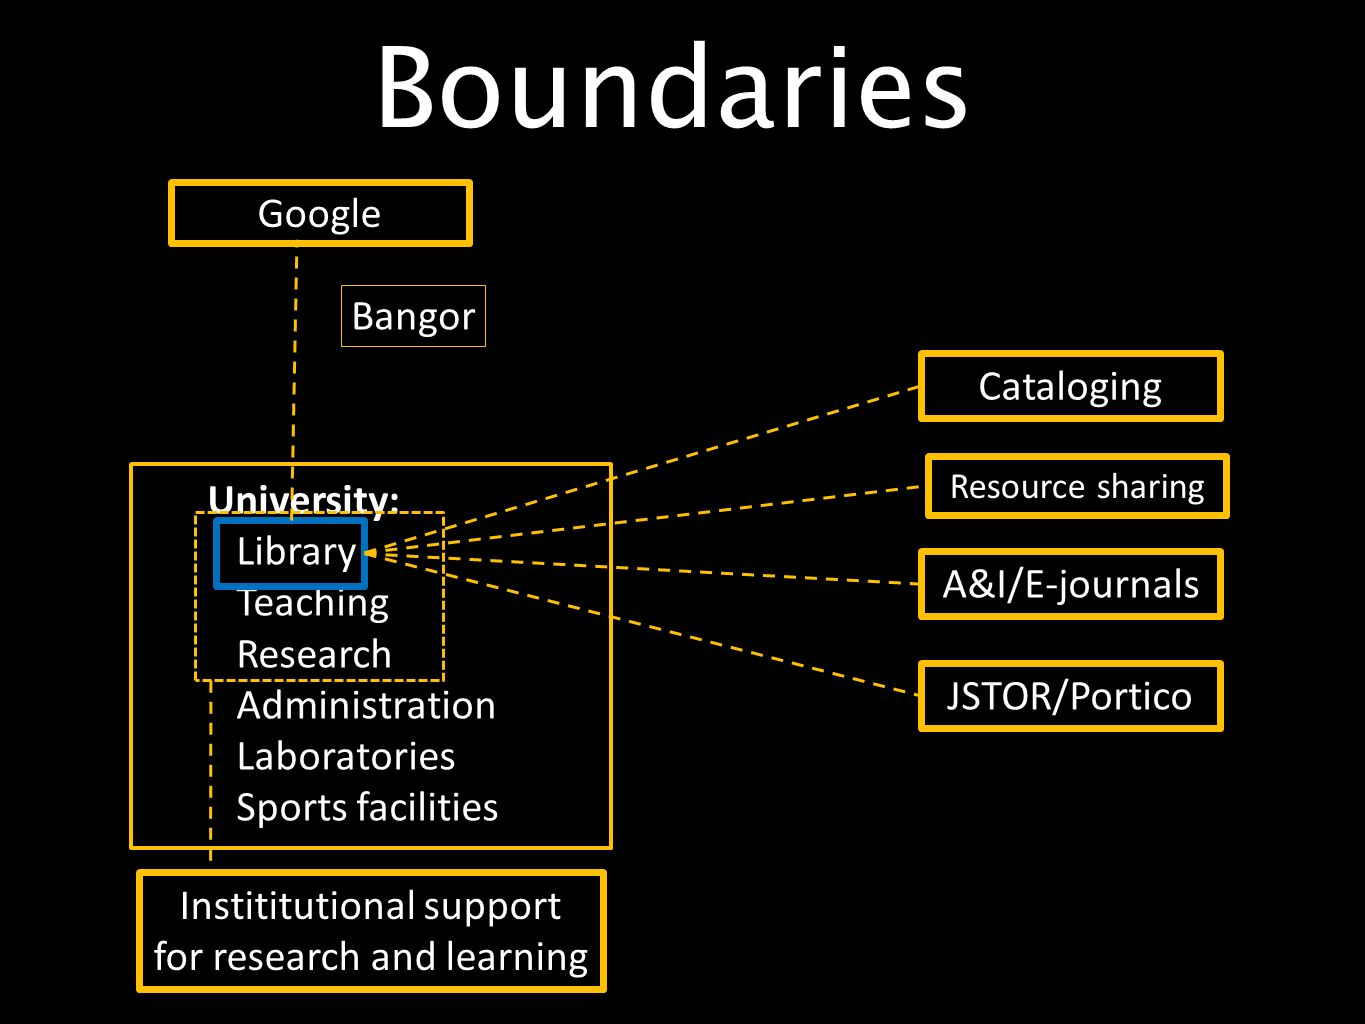 Boundaries University: Library Teaching Research Administration Laboratories Sports facilities Google Bangor Instititutional support for research and learning Cataloging A&I/E-journals JSTOR/Portico Resource sharing